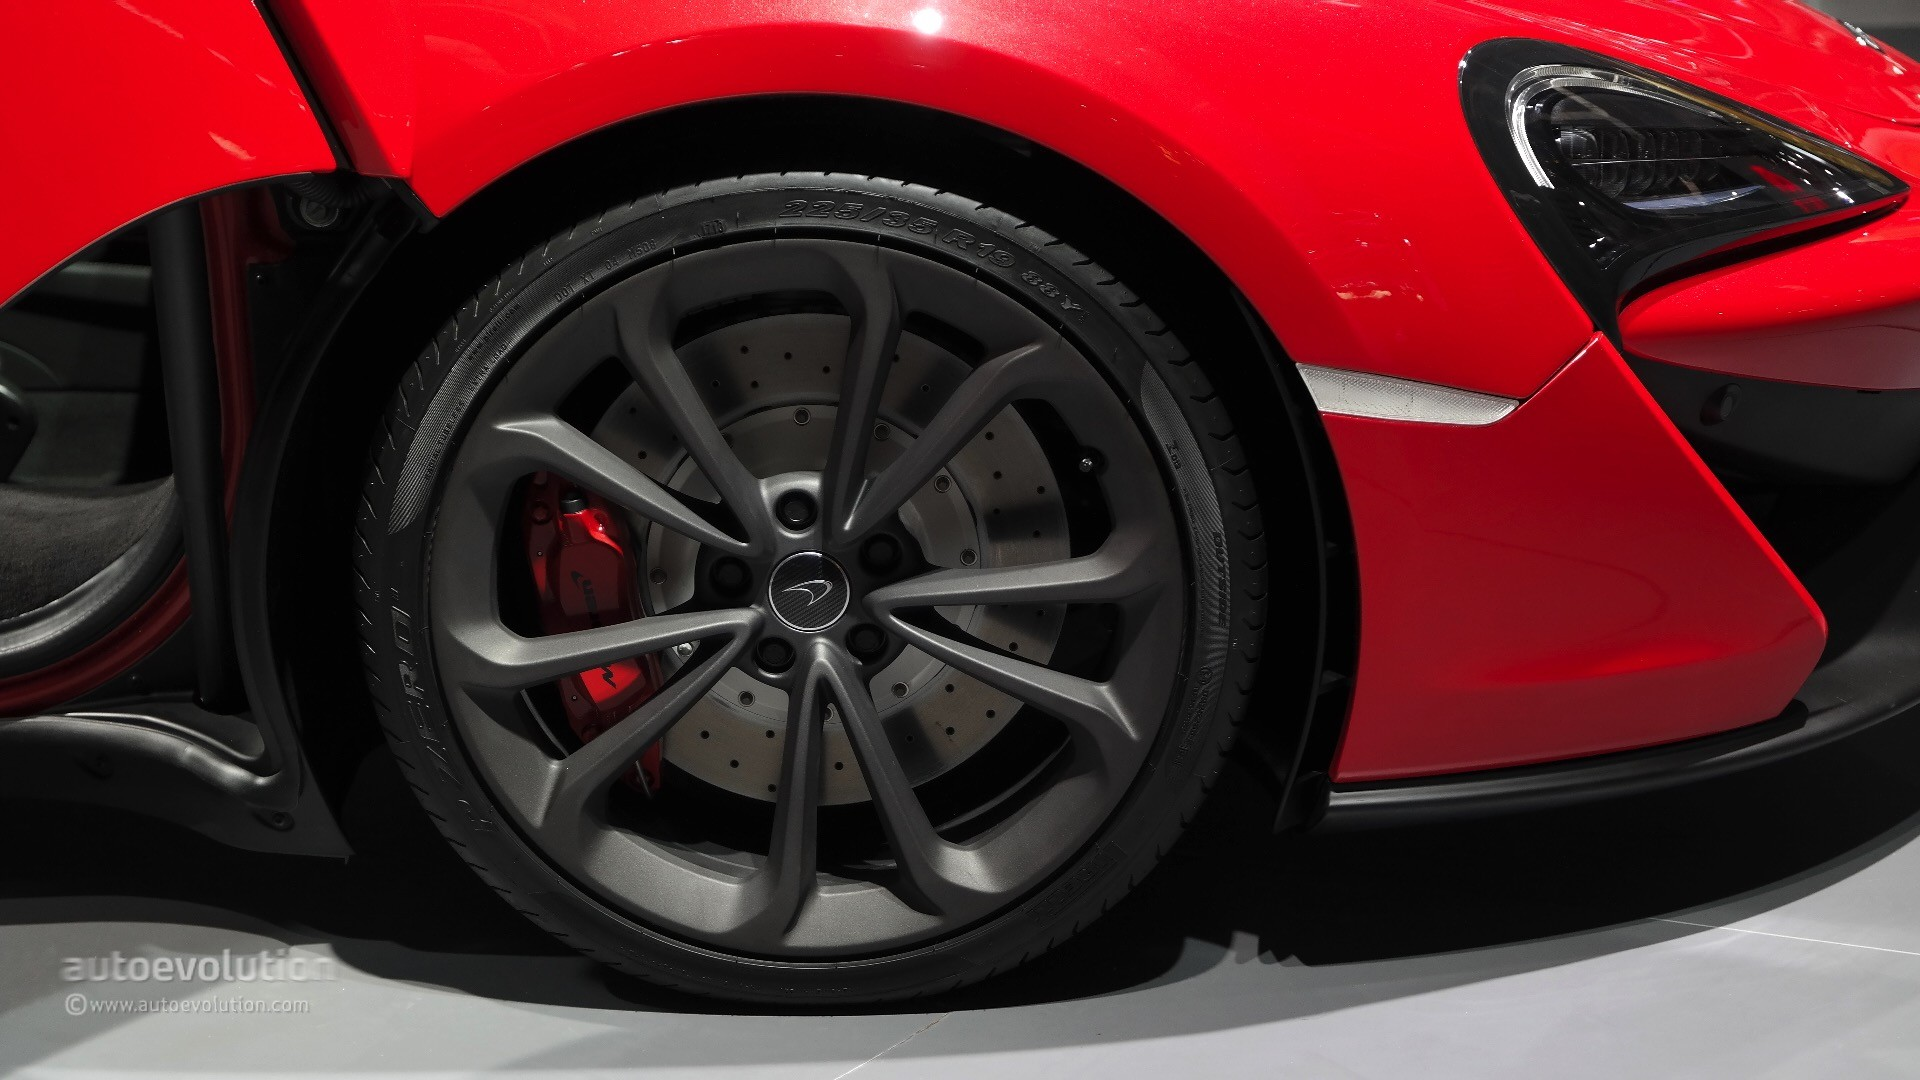 2016 mclaren 540c launched in shanghai as the cheapest model ever